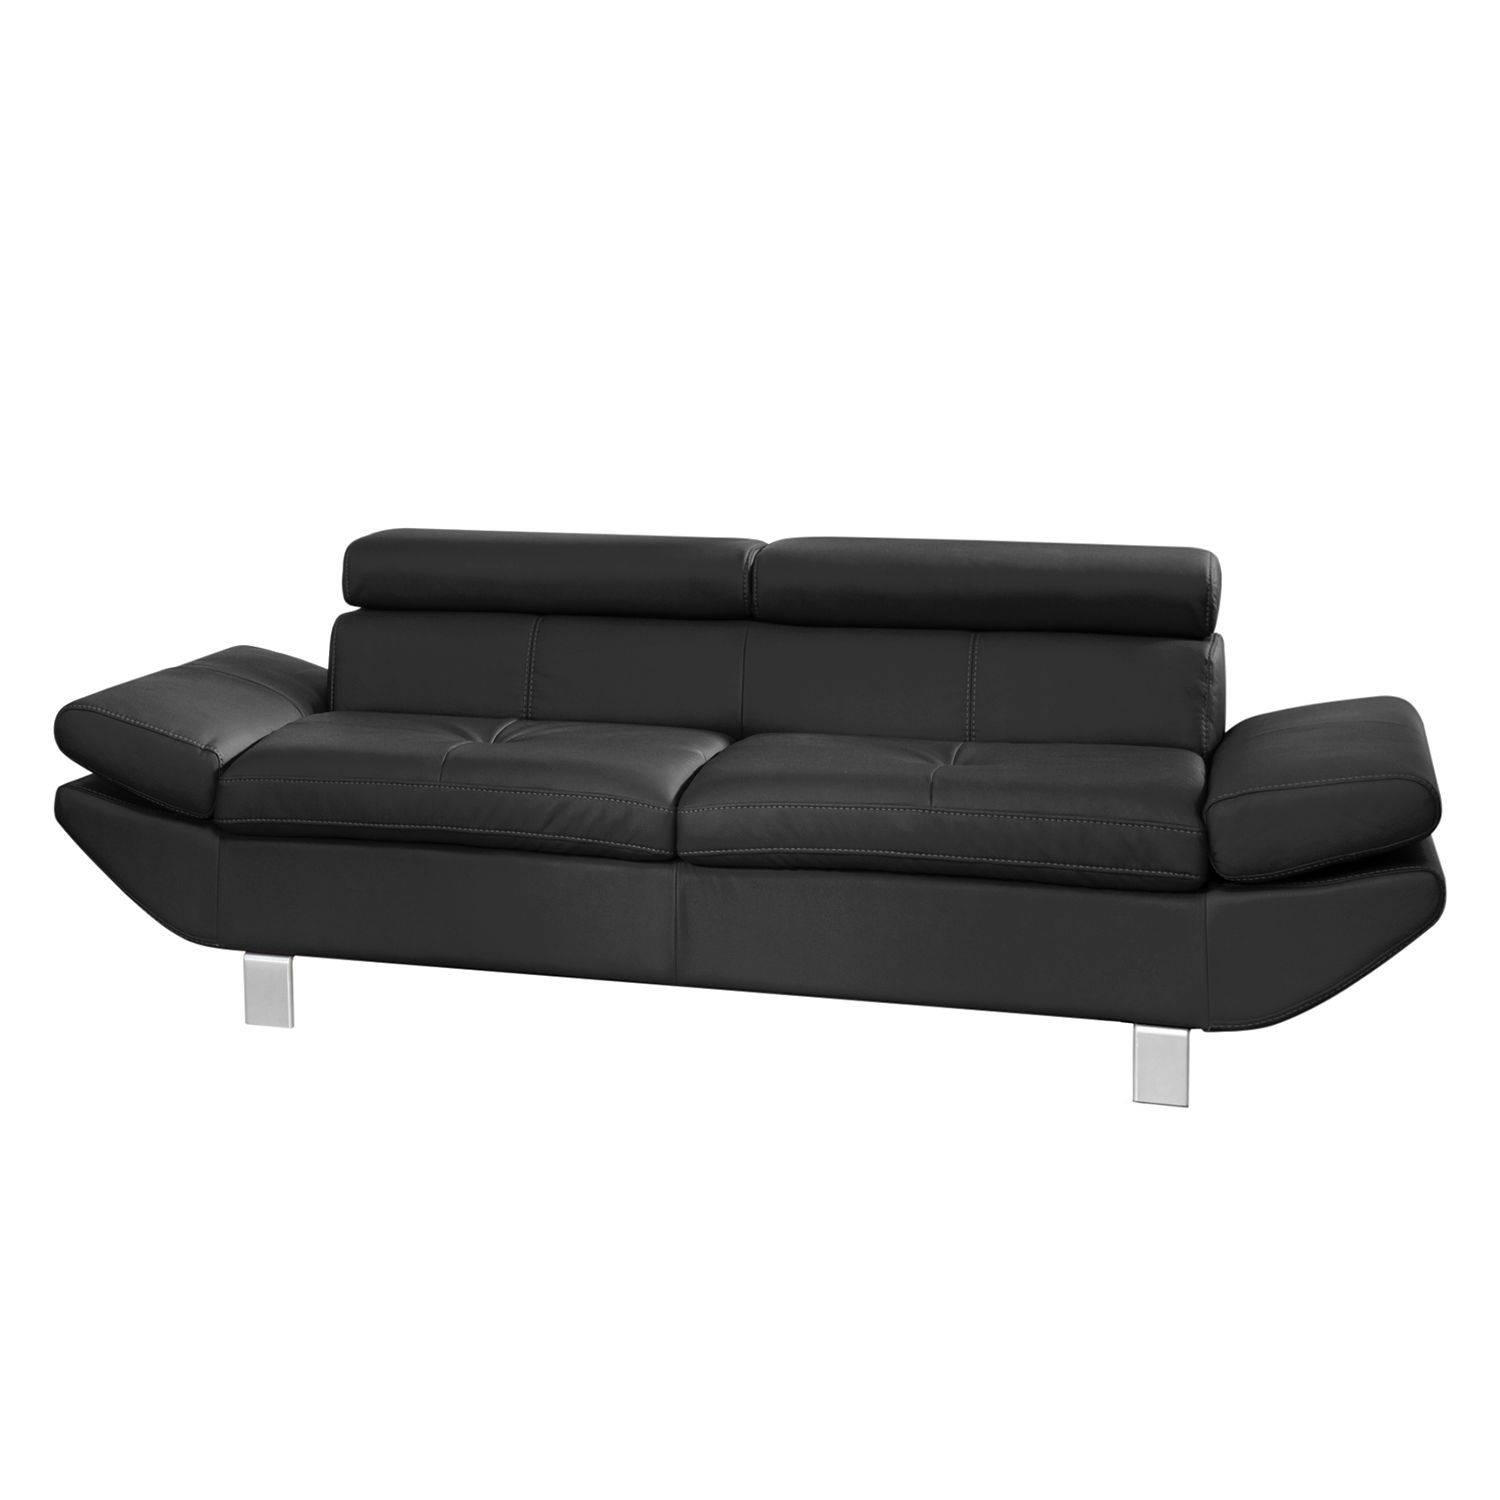 Kinosessel Otto 3 Sitzer Sofa Mit Relaxfunktion 3 Sitzer City Sofa Mit